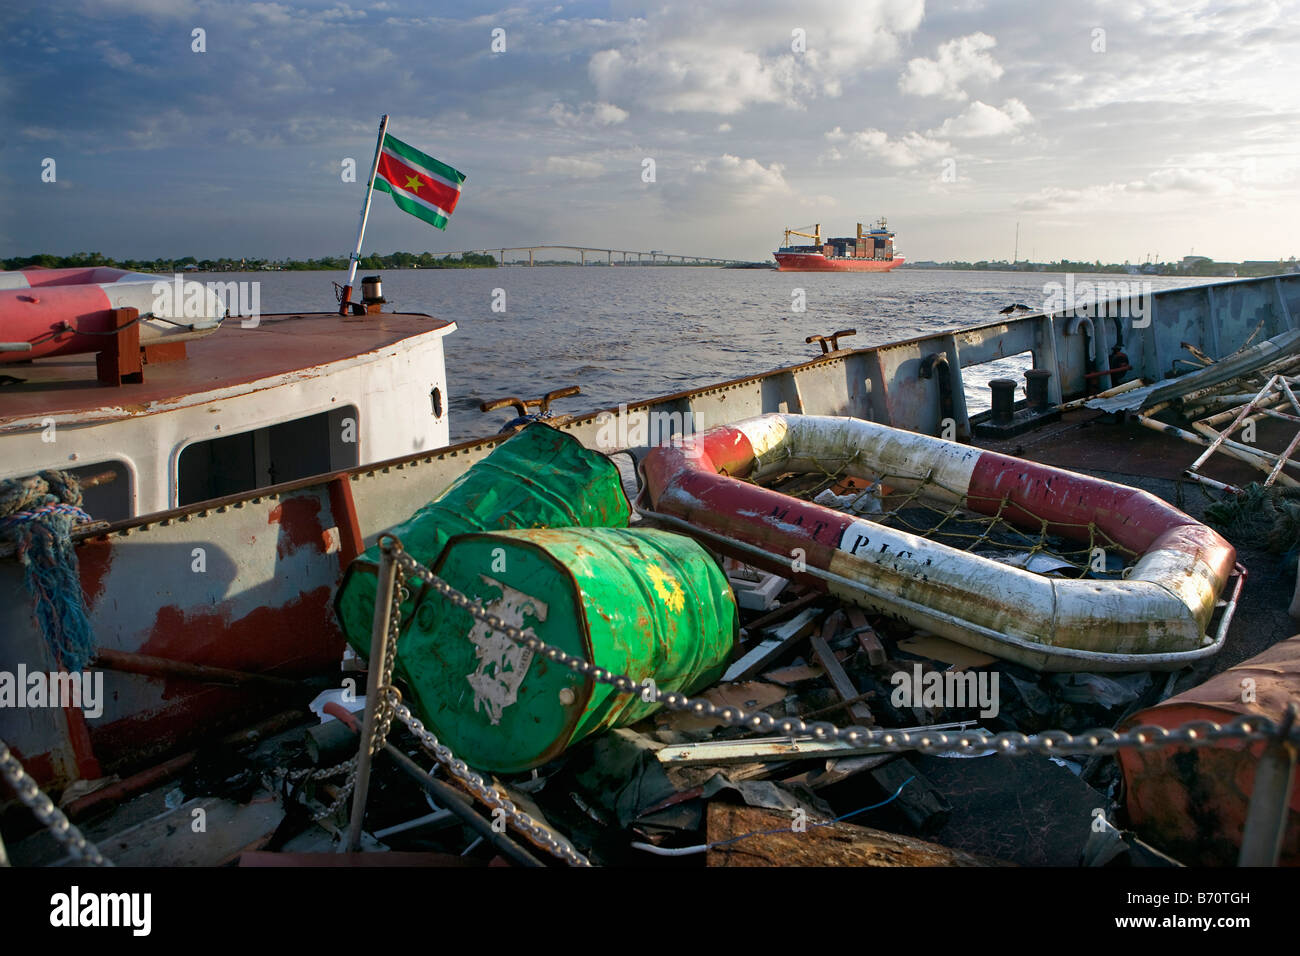 Suriname, Paramaribo. View from deserted ship in Suriname river, in background container ship and Wijdenbosch bridge. Stock Photo